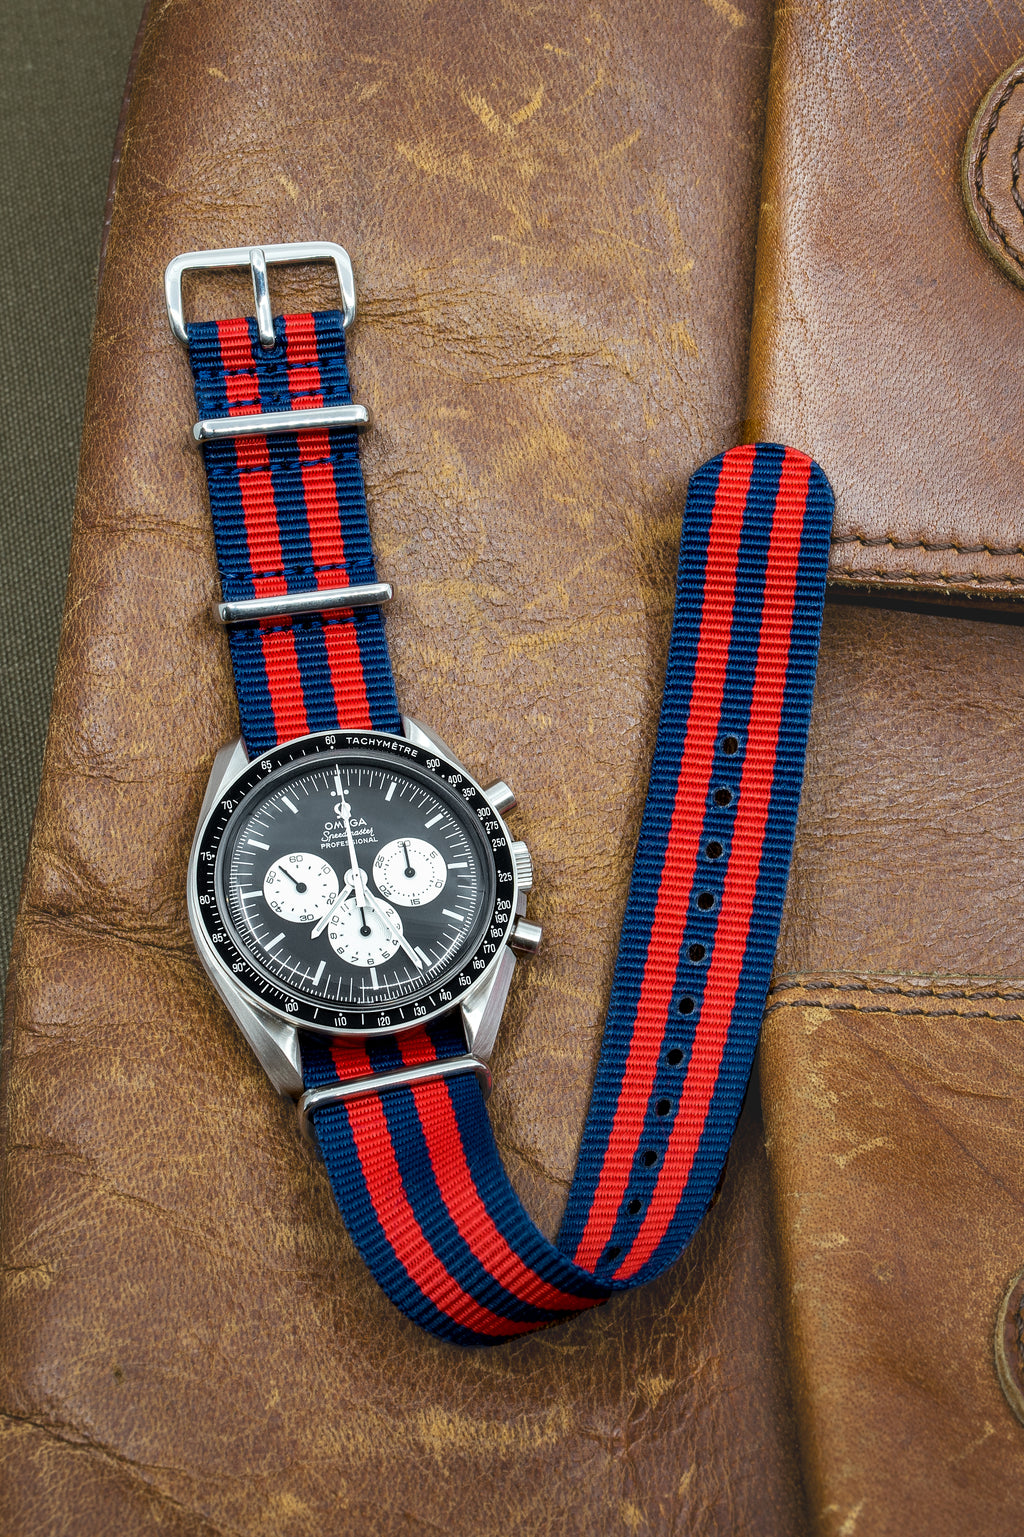 Nato Watch Straps in BLUE / RED Stripes with Polished Buckle & Keepers